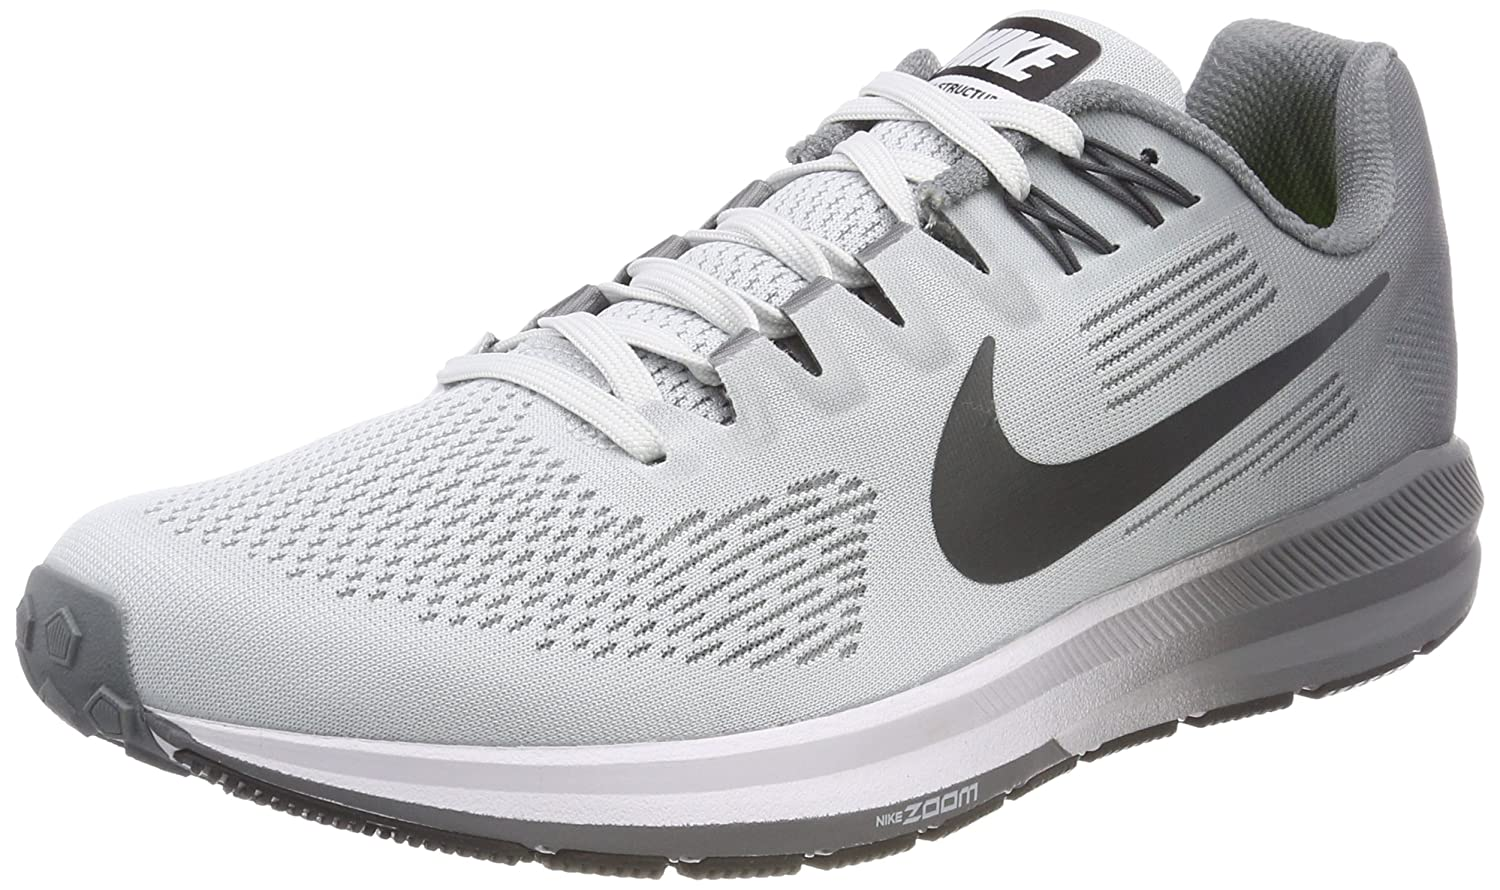 307c9dfe49b7a5 Nike Air Zoom Structure 21 Mens Fashion-Sneakers 904695-005 7.5 - Pure  Platinum Anthracite-Cool Grey  Buy Online at Low Prices in India - Amazon.in